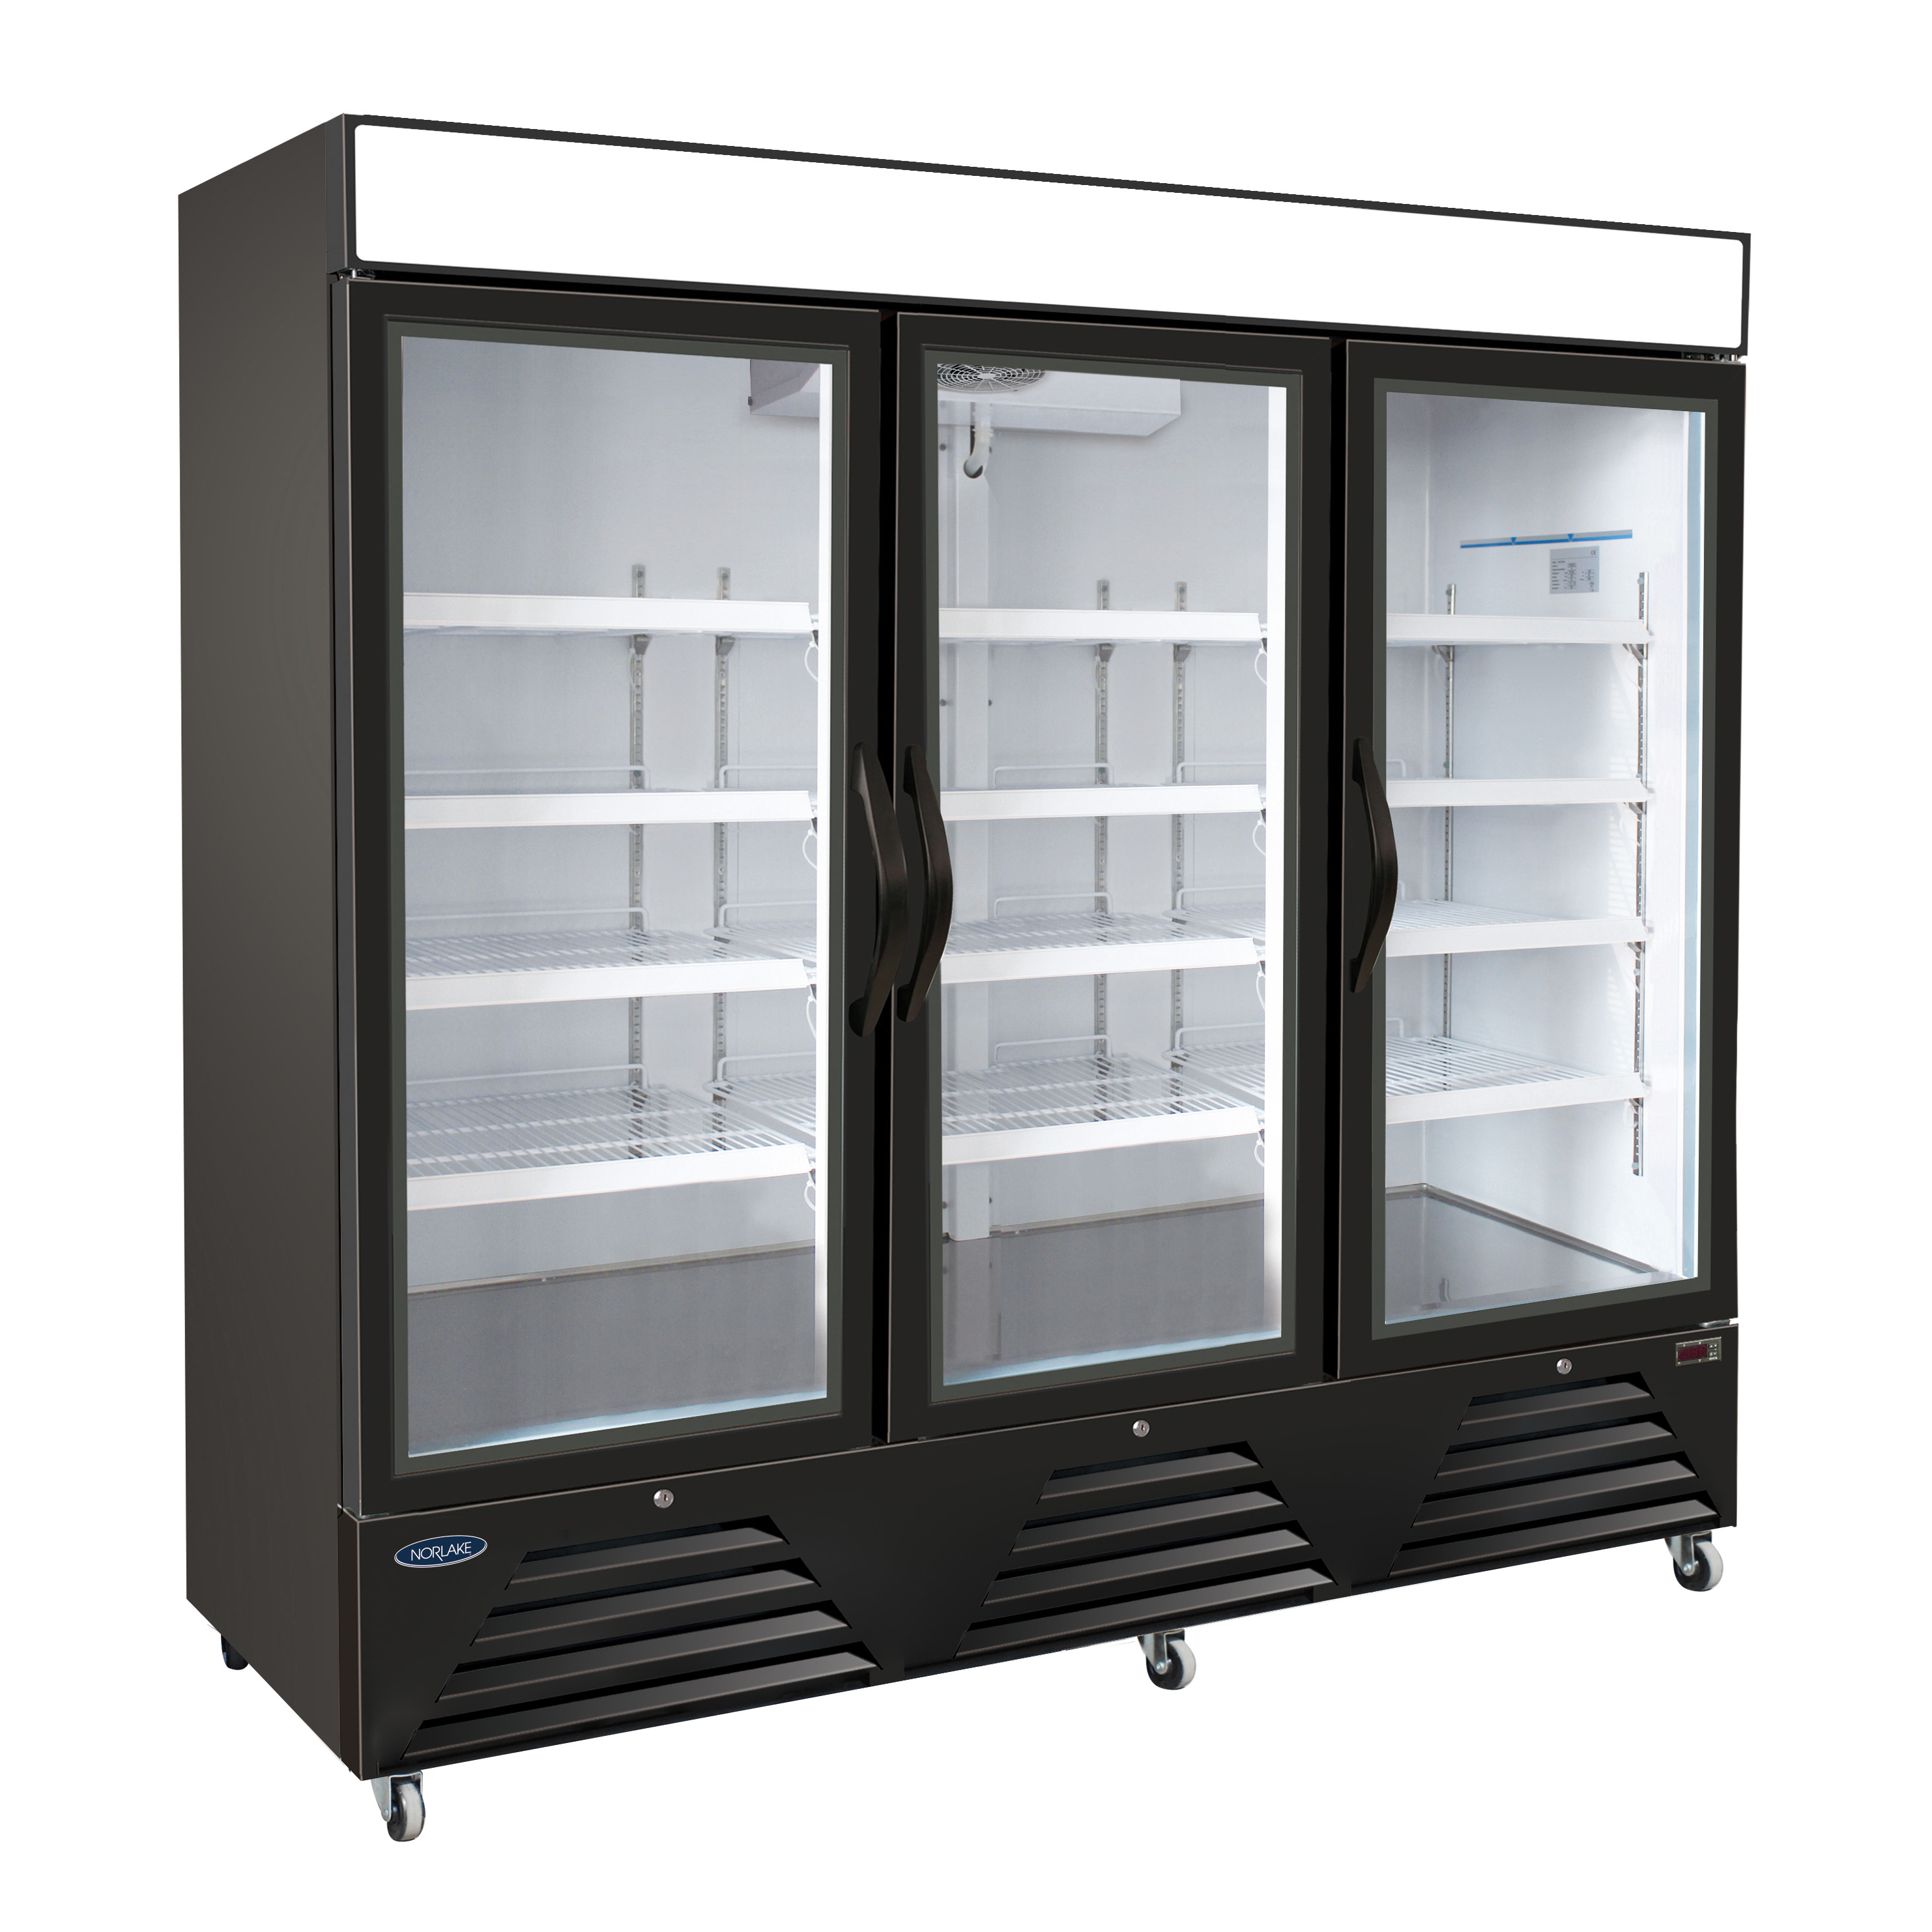 Nor-Lake NLRGM72HB refrigerator, merchandiser